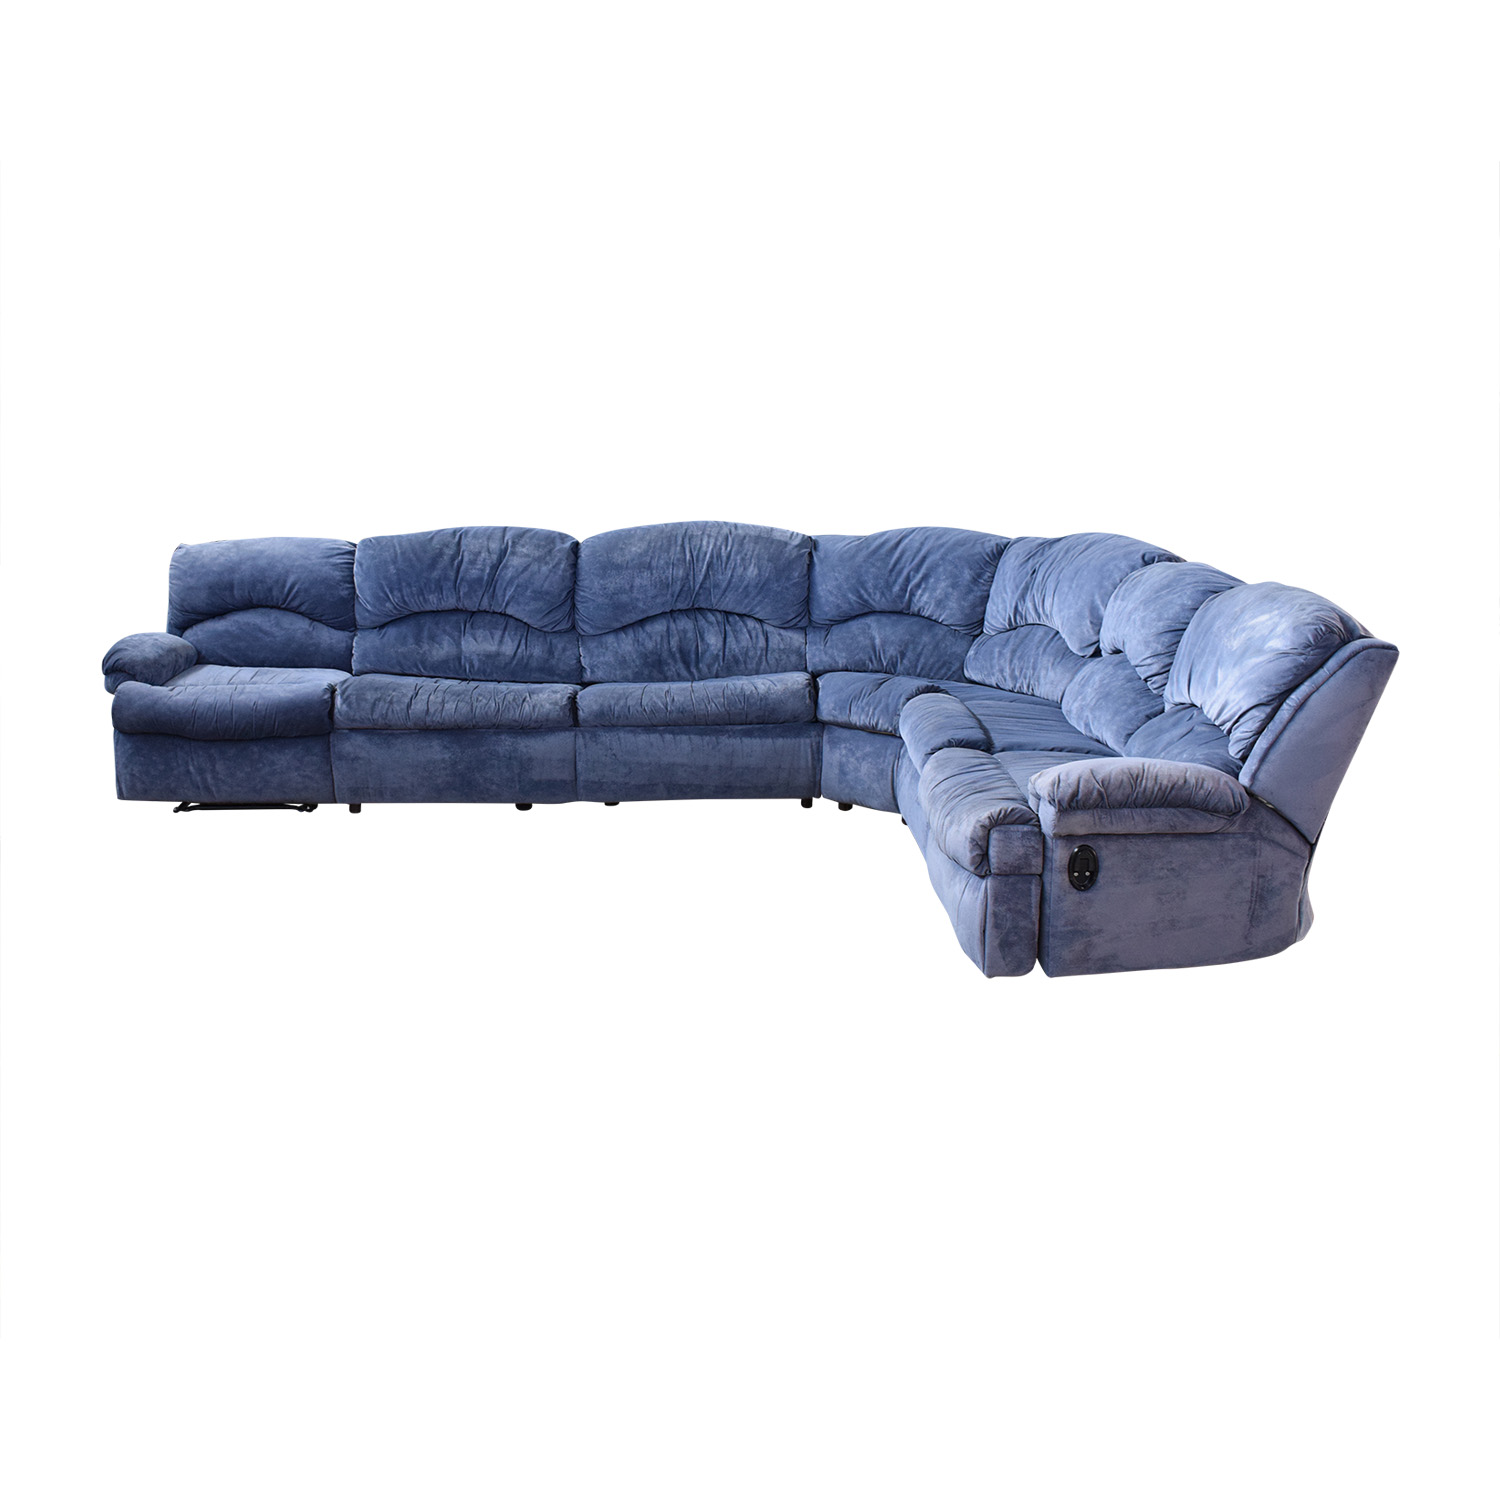 shop Raymour & Flanigan Sectional Sofa with Sleeper Raymour & Flanigan Sofas